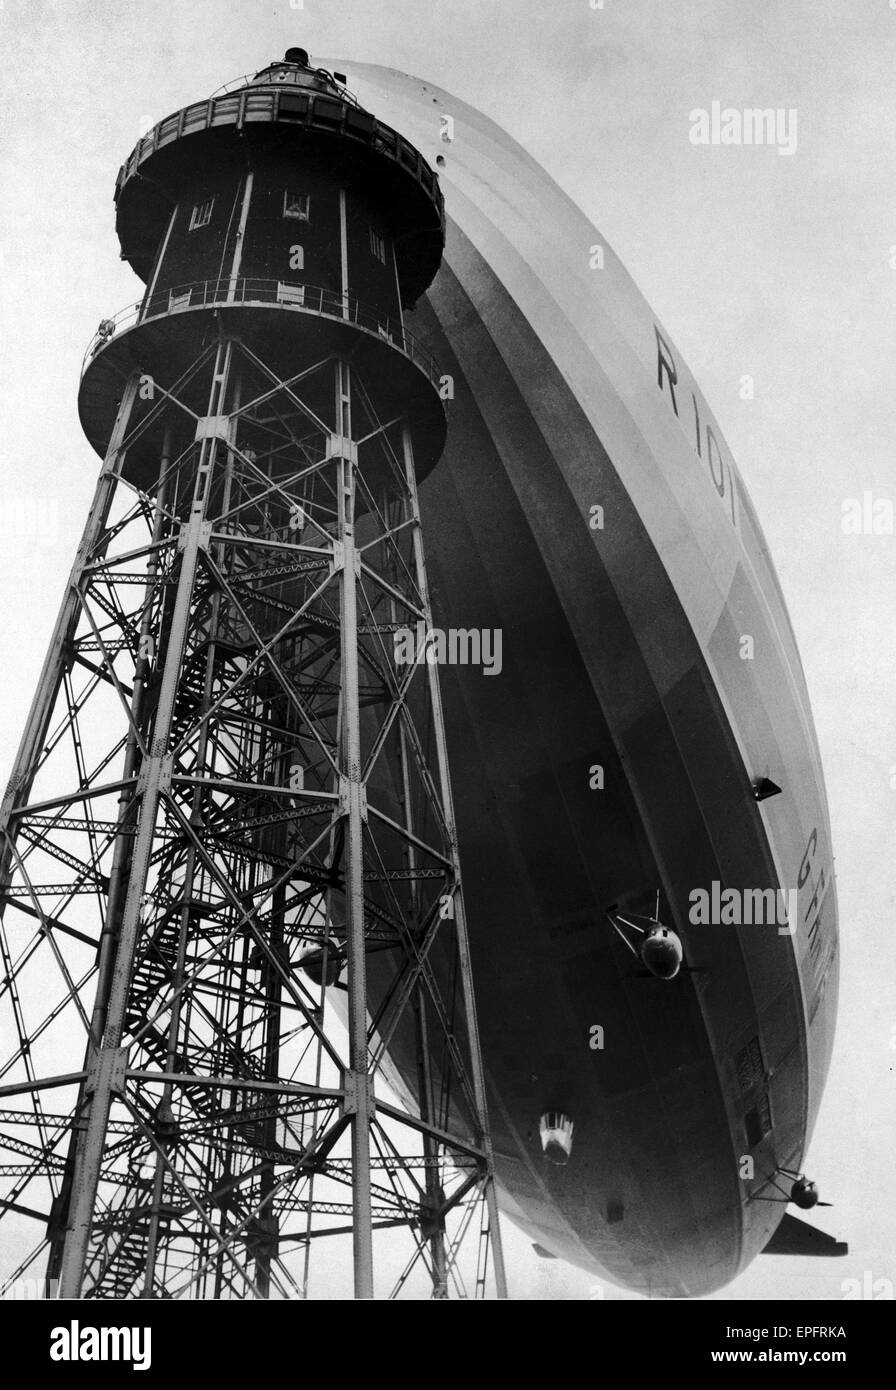 The Airship R101 seen here attached to the mooring tower at Royal Airship Works Cardington prior to its first flight. - Stock Image